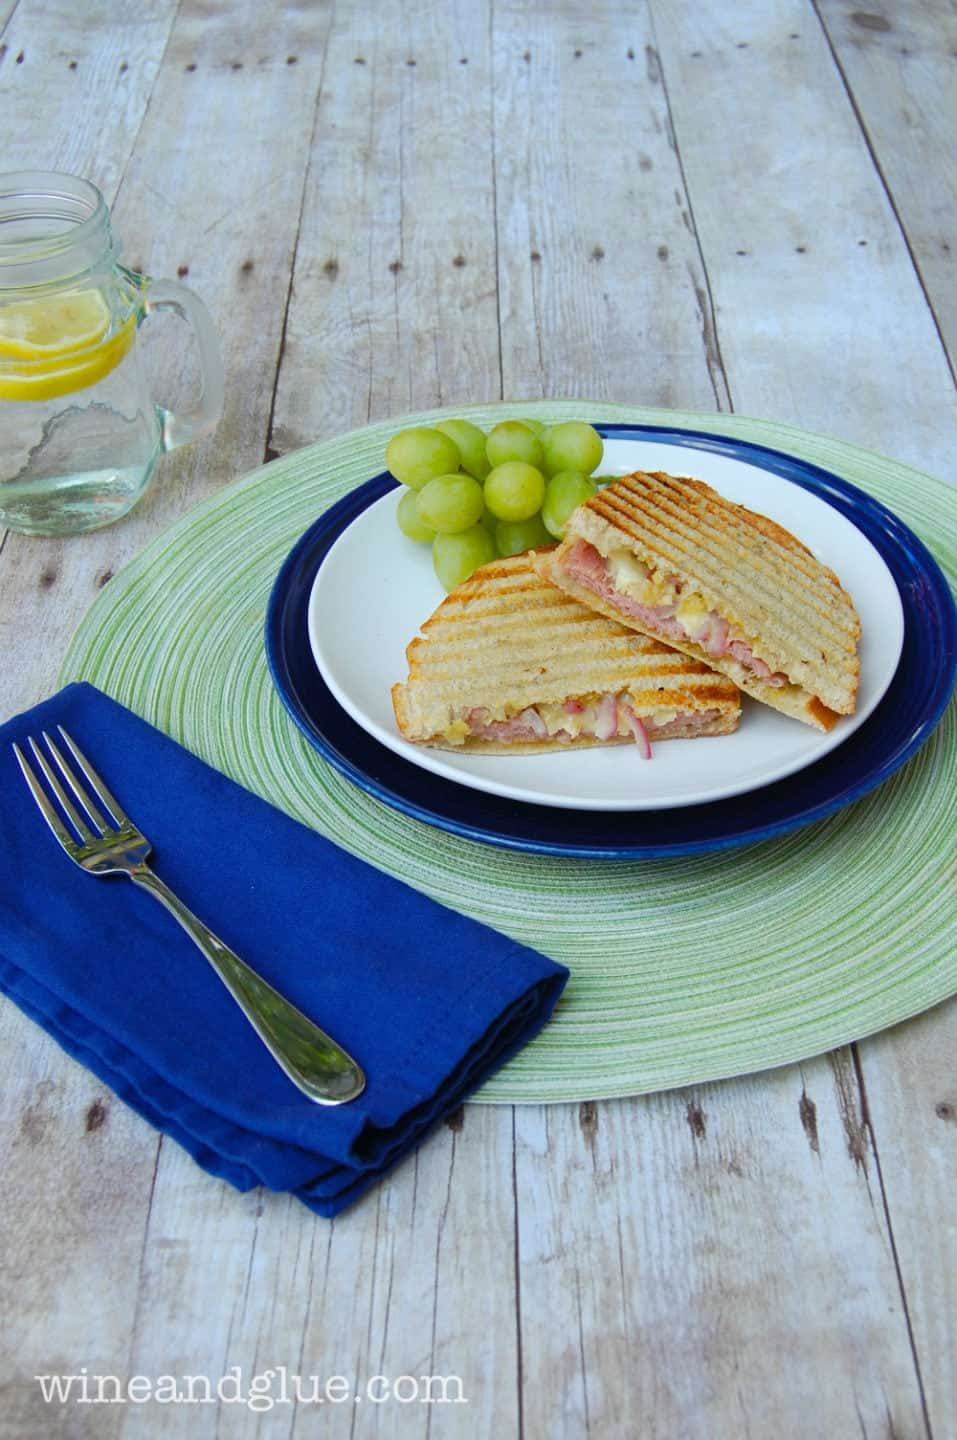 Ham and Brie Panini mixes the most delicious flavors into an easy panini that will make you feel like you are having lunch in a fancy cafe via www.wineandglue.com